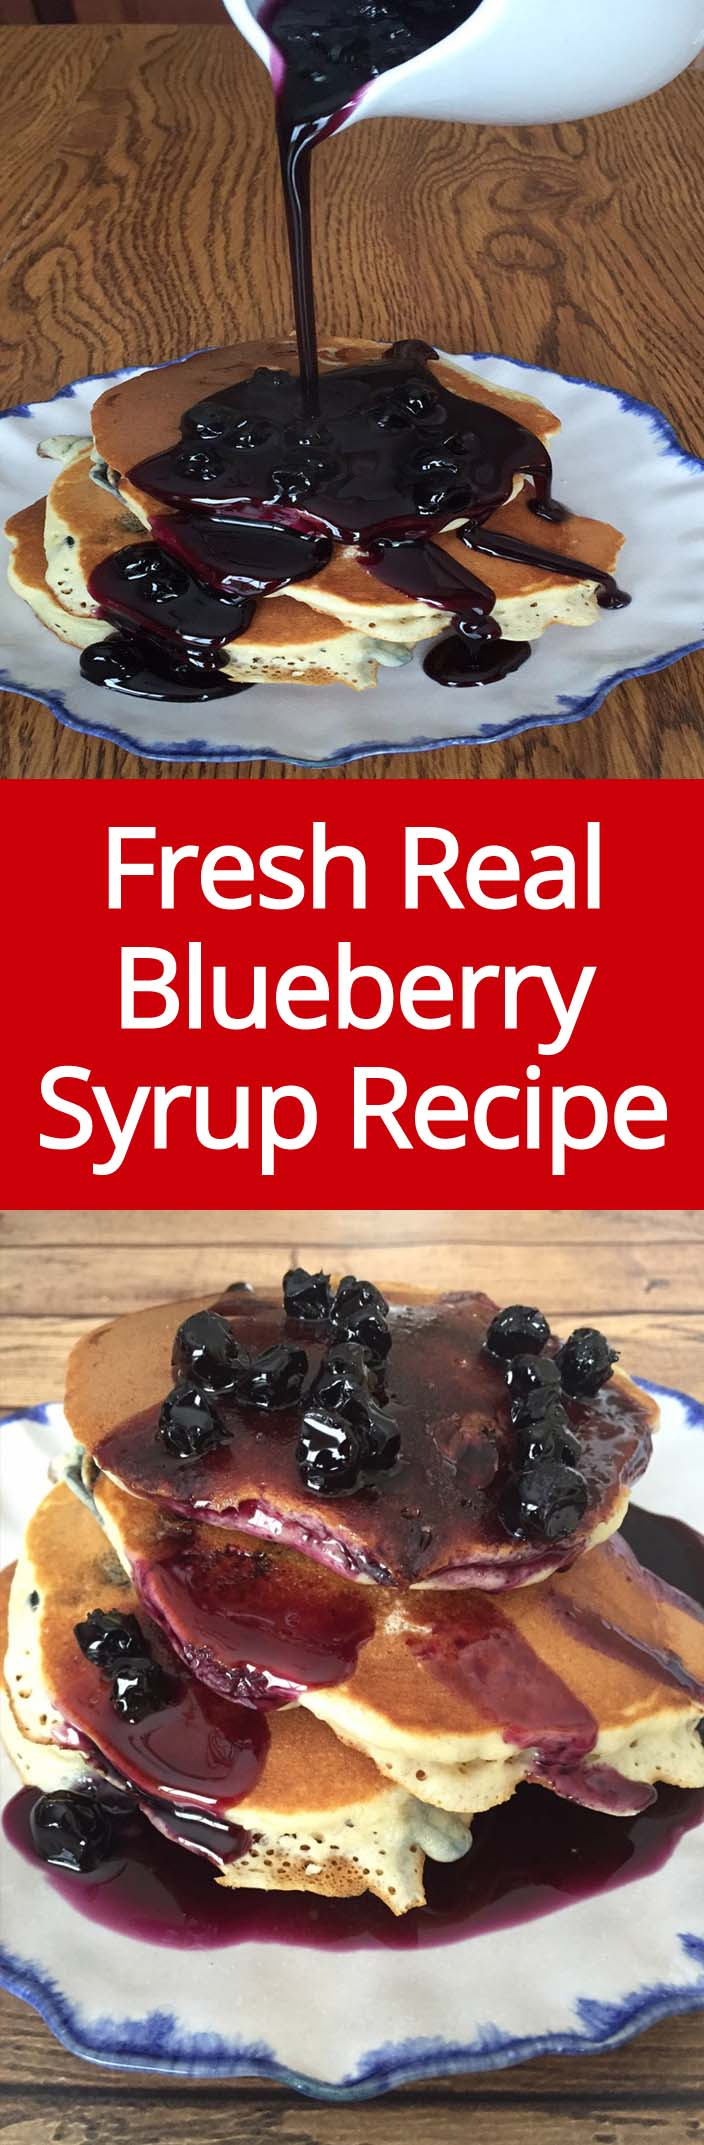 Homemade Blueberry Syrup Recipe For Pancakes Or Ice Cream